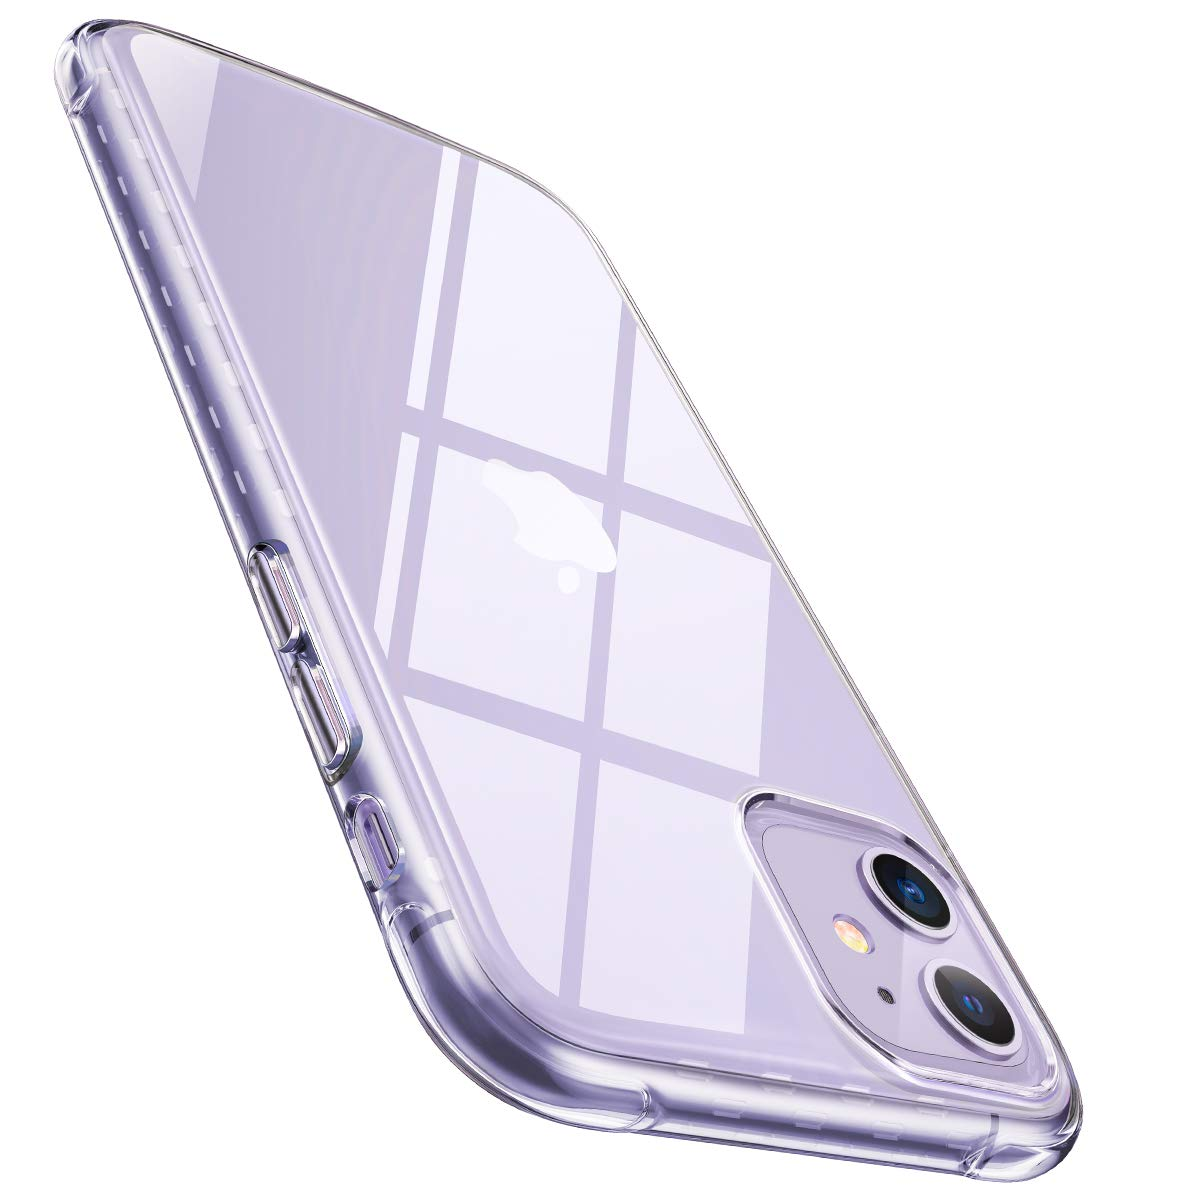 AINOPE Compatible iPhone 11 Case, Cyrstal Clear [Anti-Drop] Phone Case for iPhone 11 [Soft Sillicone TPU] [Scratch-Resistant] Screen and Camera Protection iPhone 11 Cover 6.1in (2019)